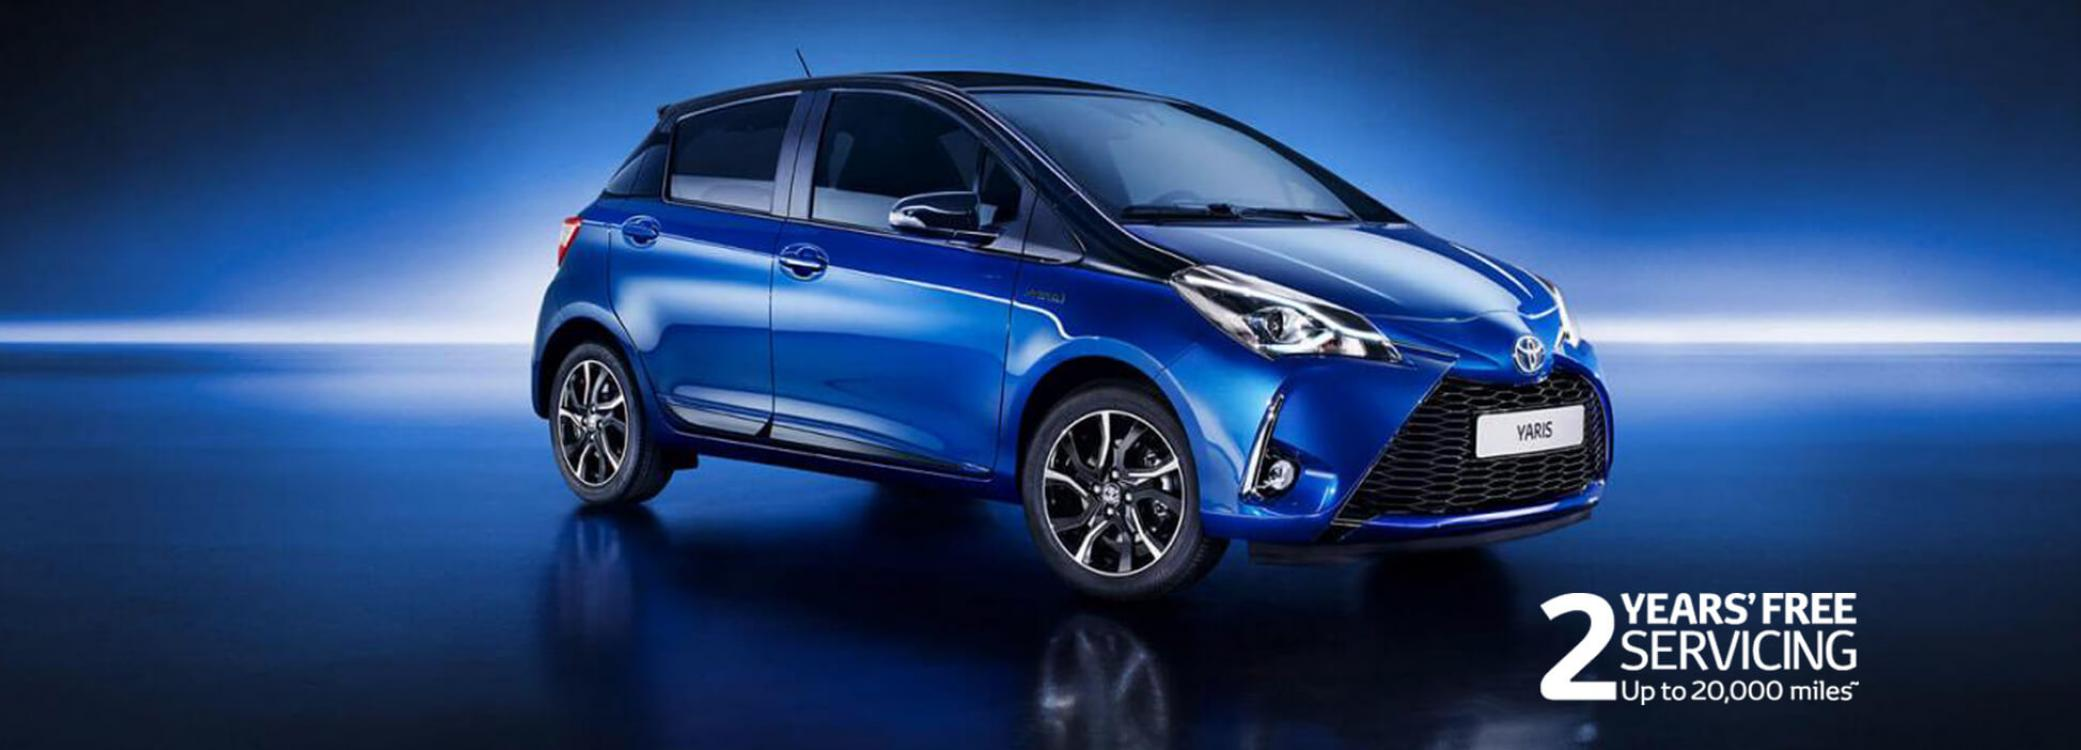 New Yaris Models Amp Features W R Davies Toyota Telford